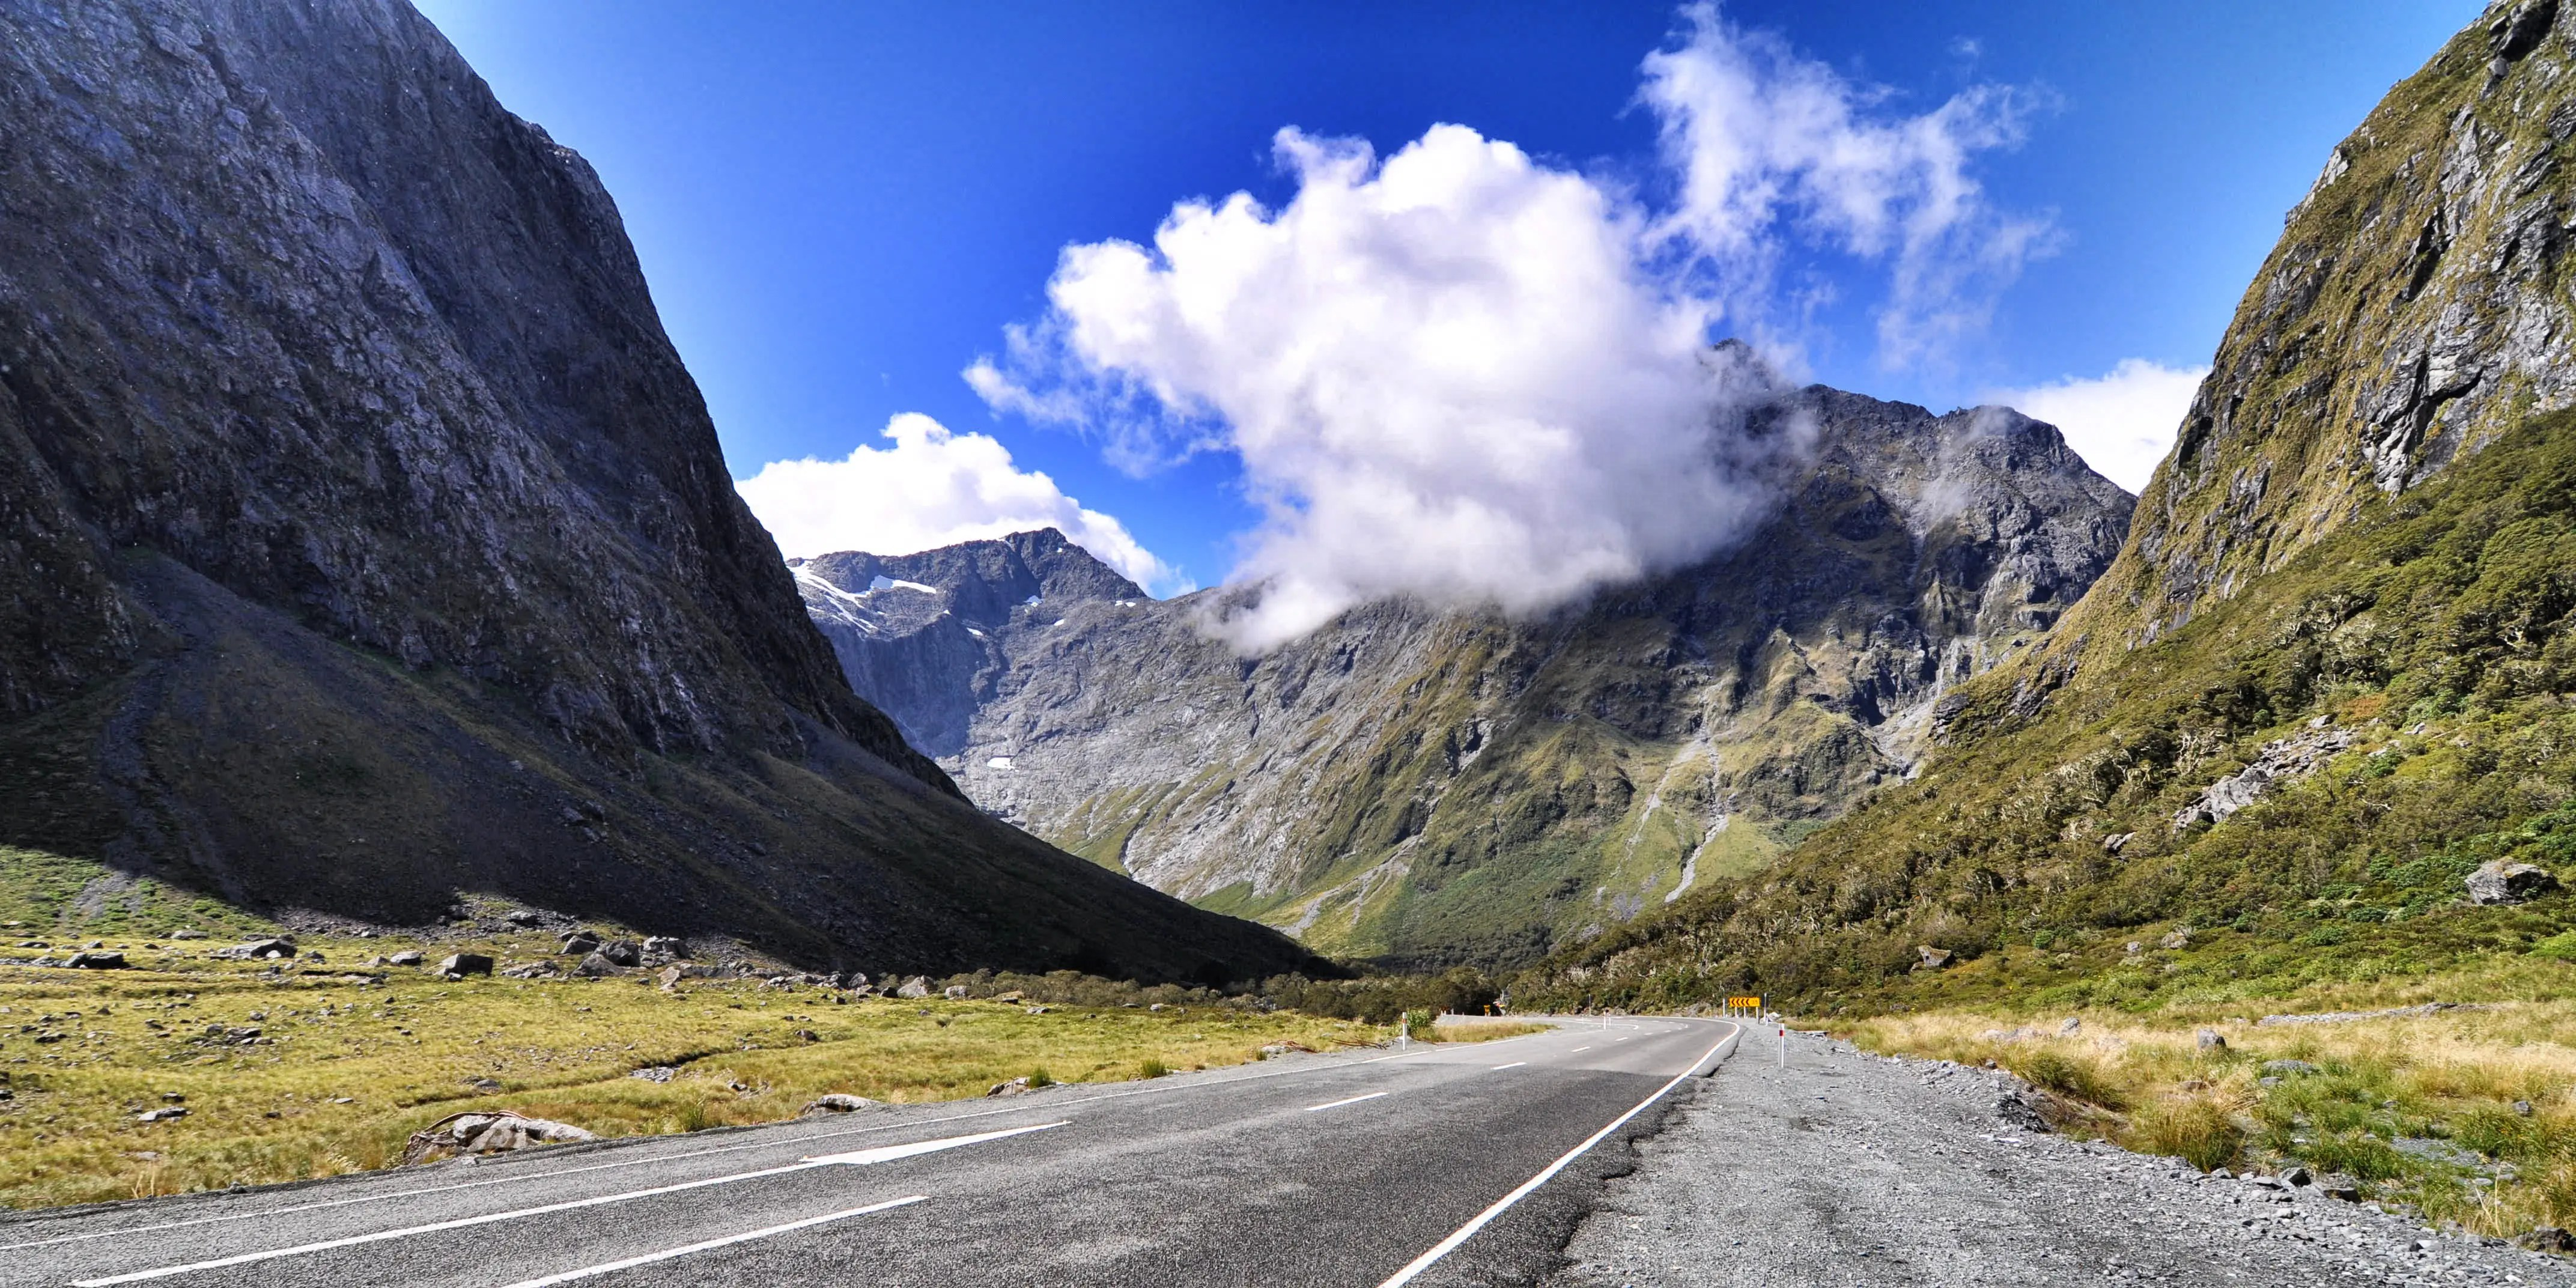 """The Milford Road in New Zealand winds for 144 miles through Fiordland National Park, in the heart of the Southern Alps. It also connects to Milford Sound, one of the filming locations for the """"Lord of the Rings"""" trilogy."""